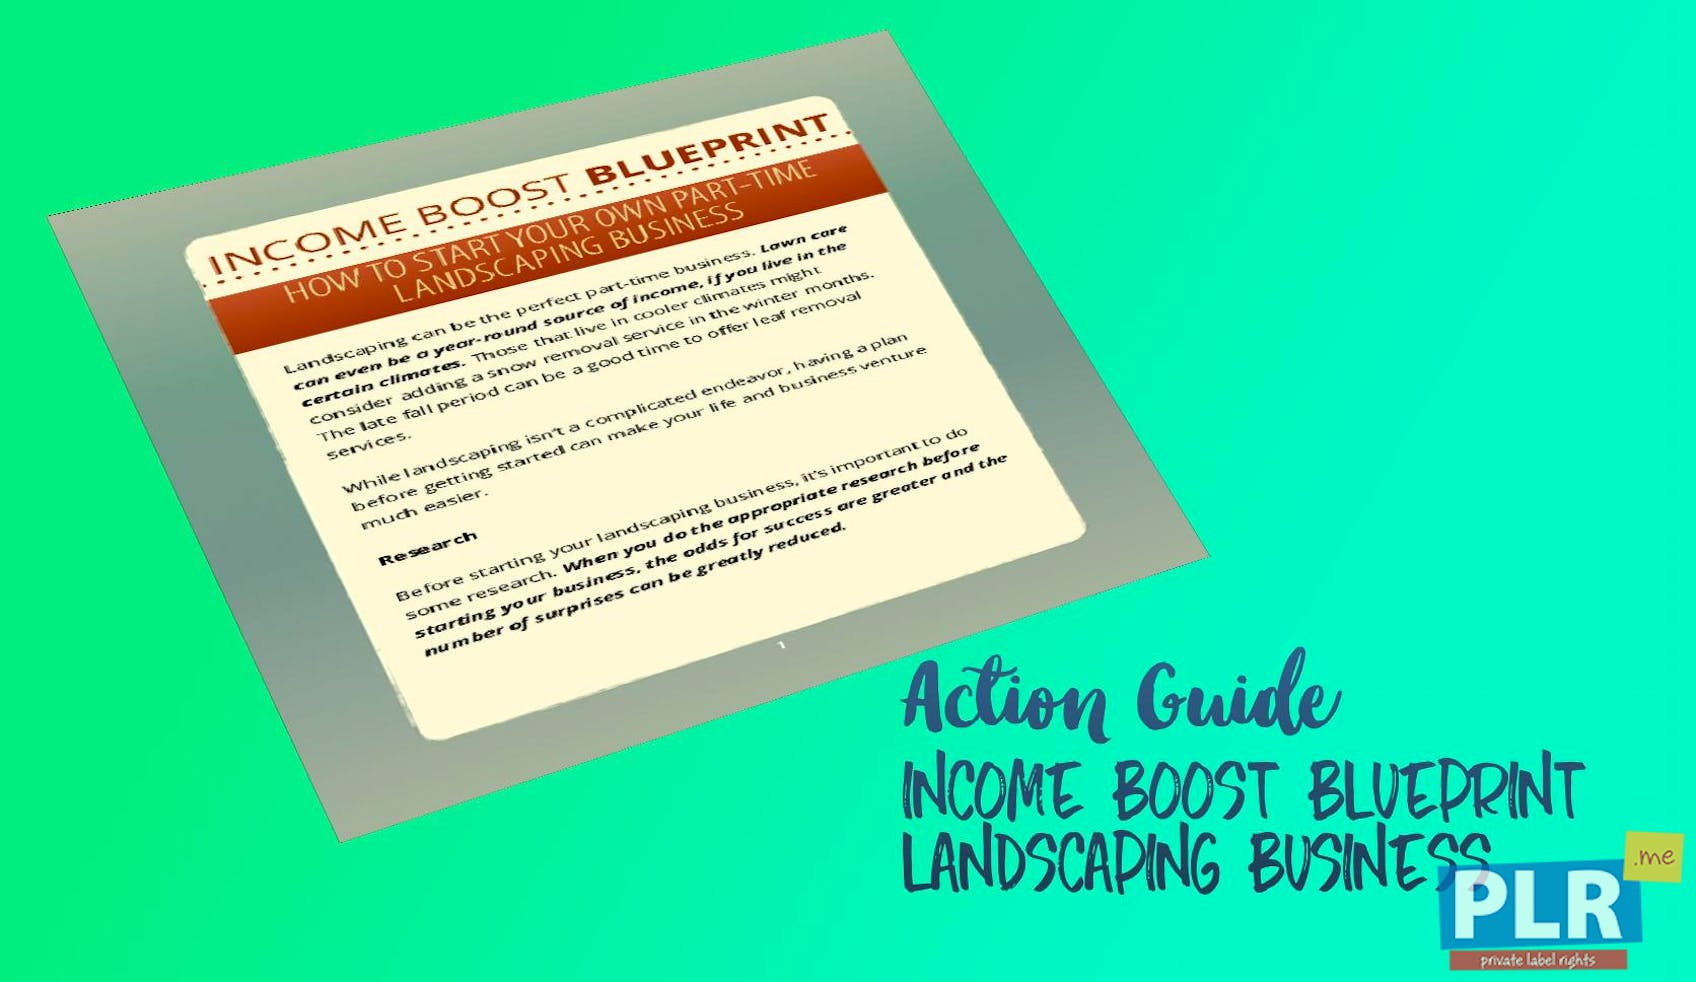 Income Boost Blueprint Landscaping Business